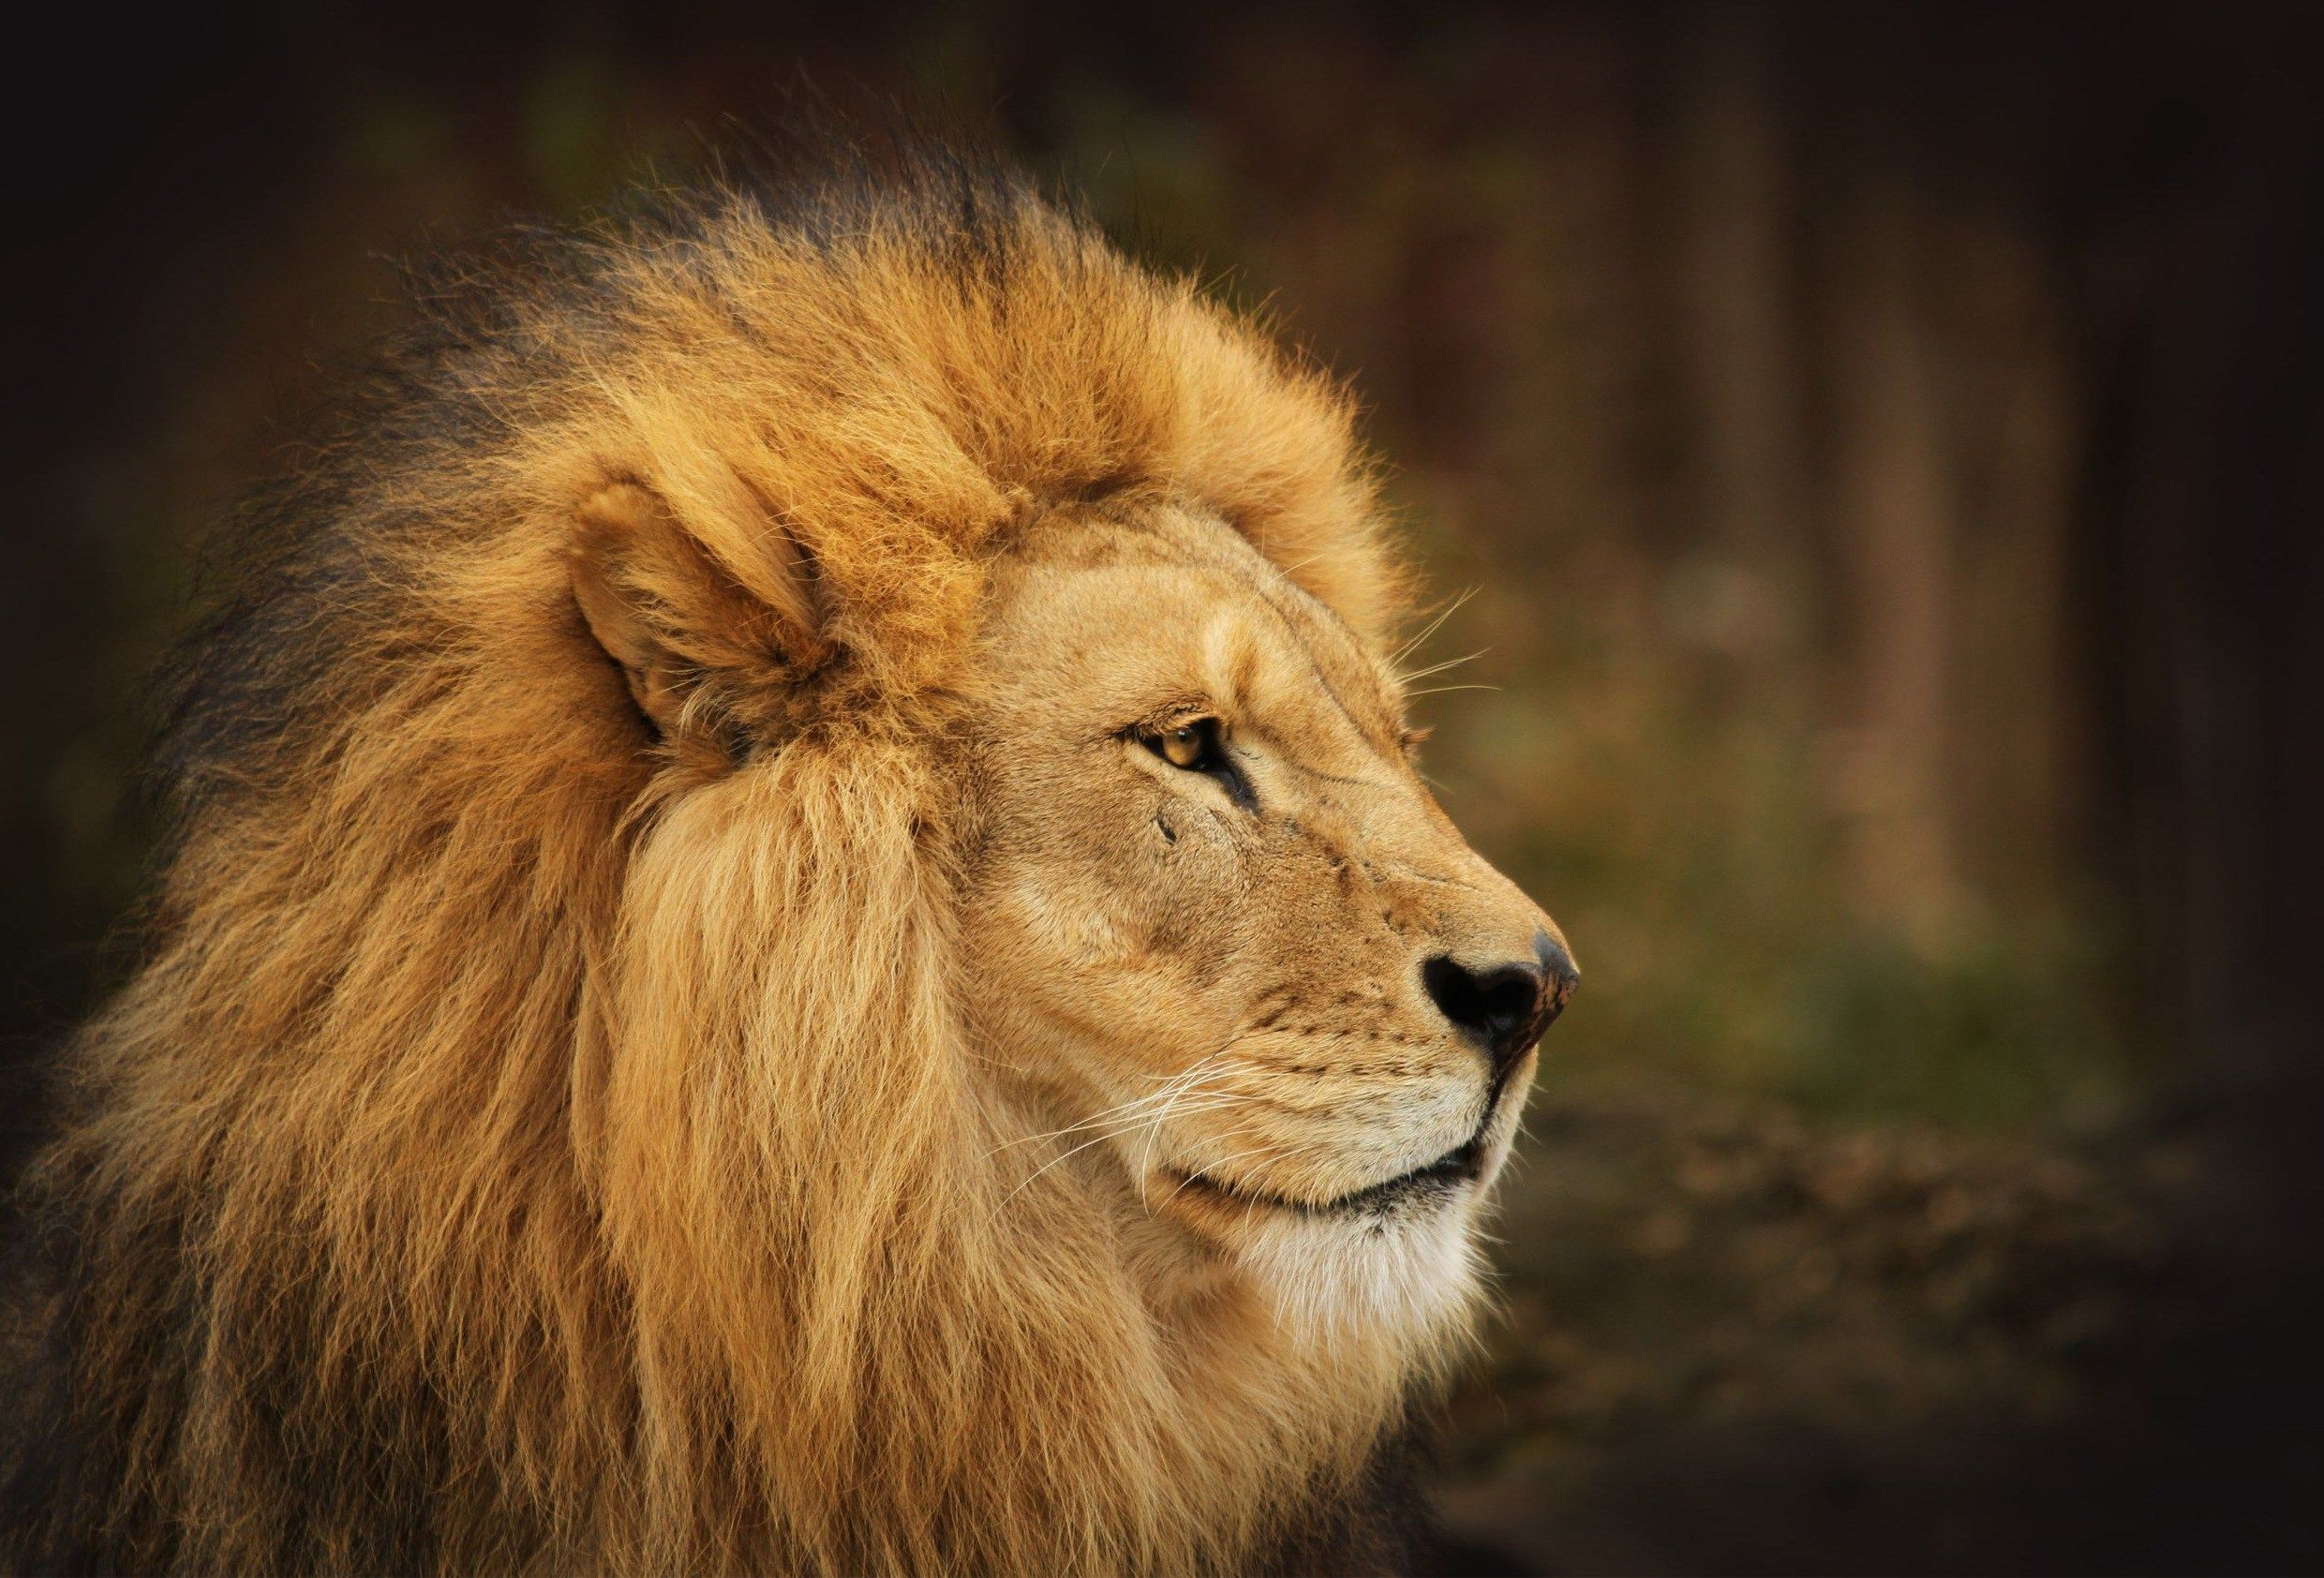 2480x1684 wallpapers free lion (With images) Lion